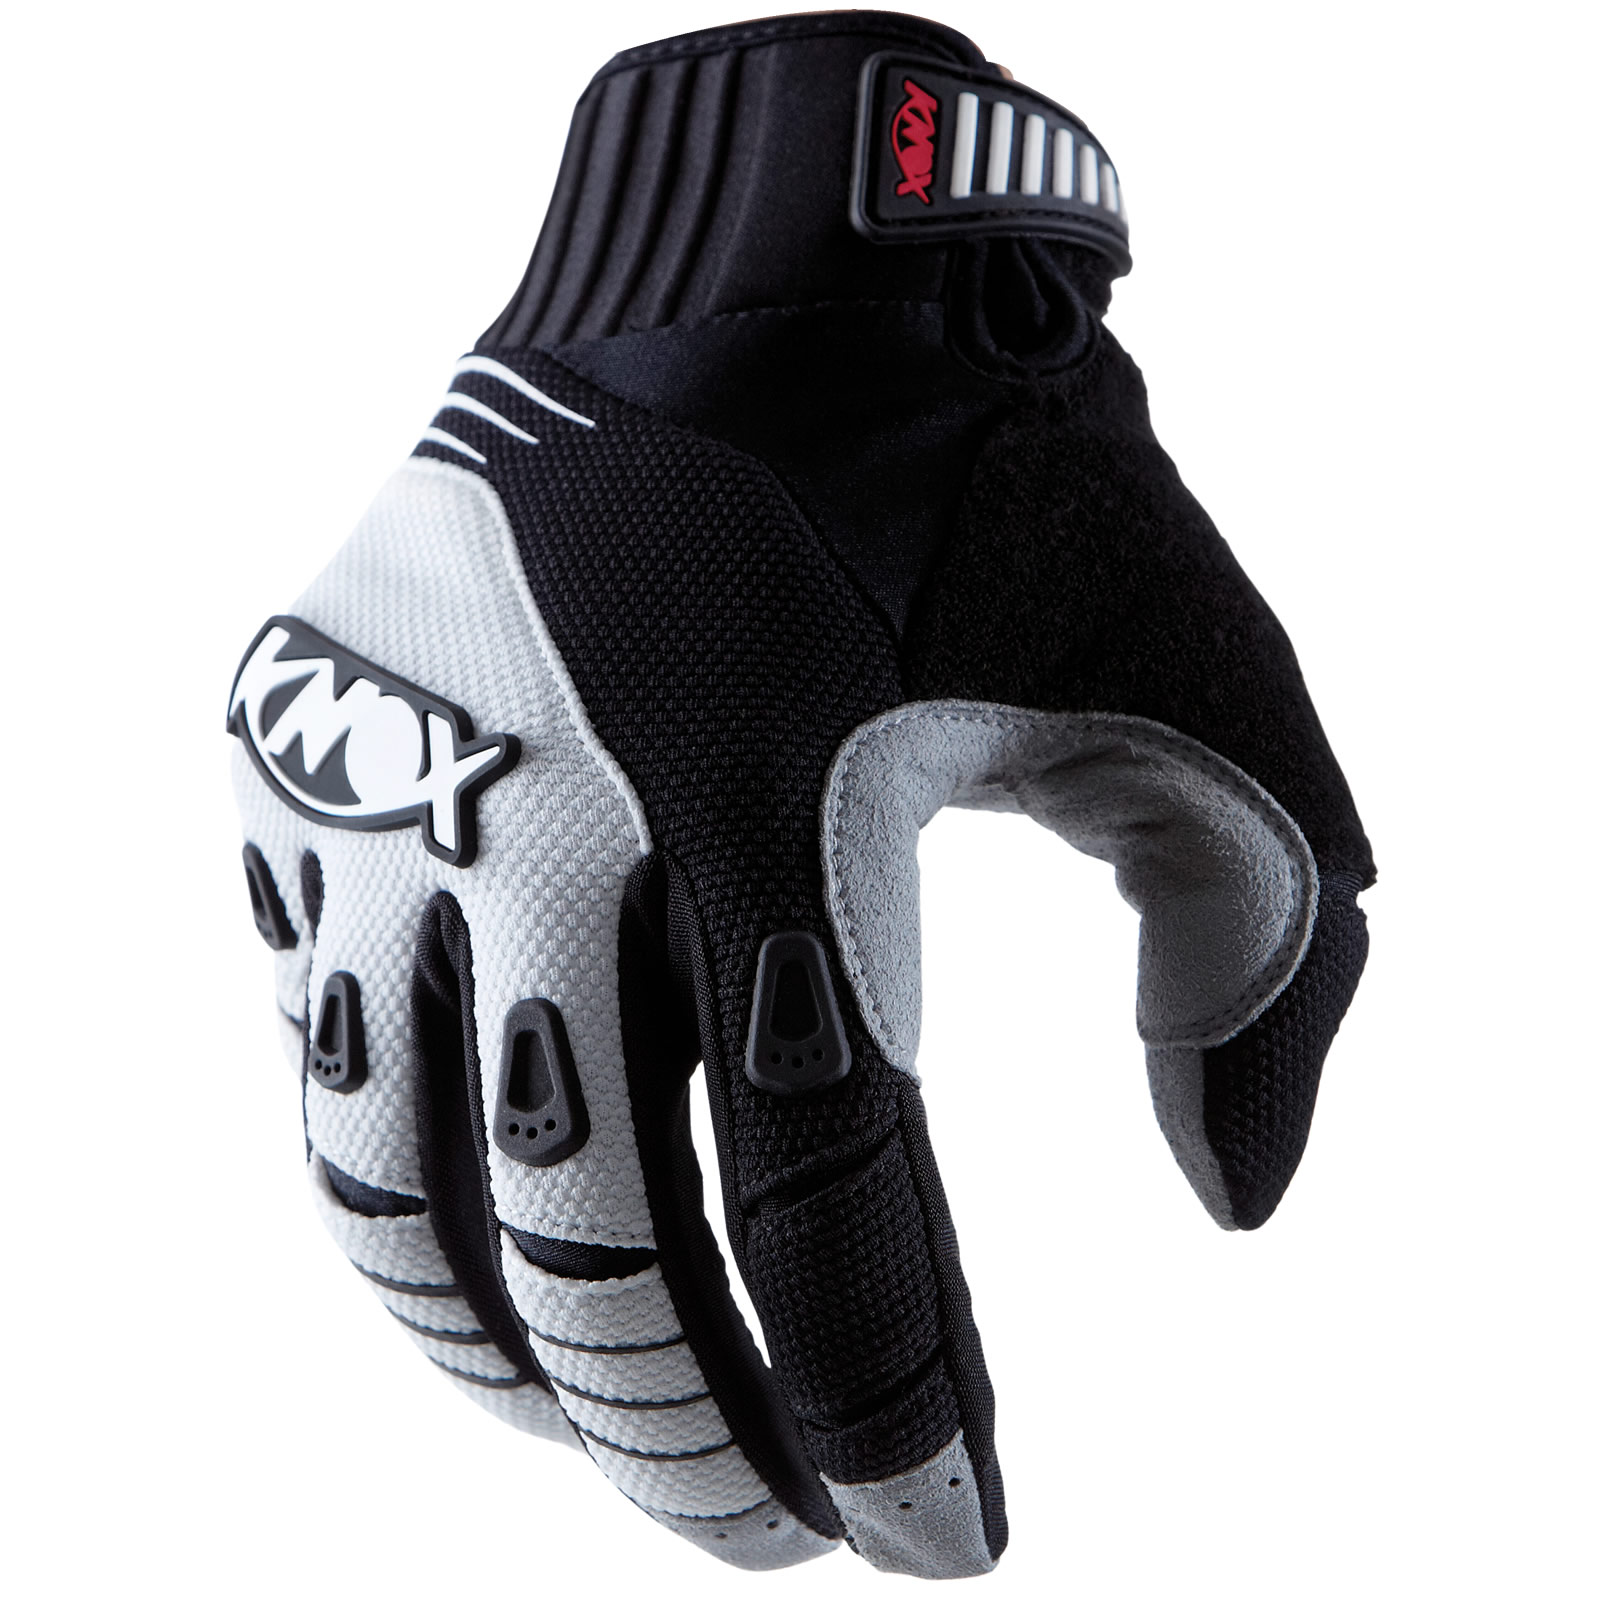 Sport Bike Hand Gloves: KNOX HAND ARMOUR ORYX OR2 SPS MOTOCROSS OFF ROAD MX MOTO-X